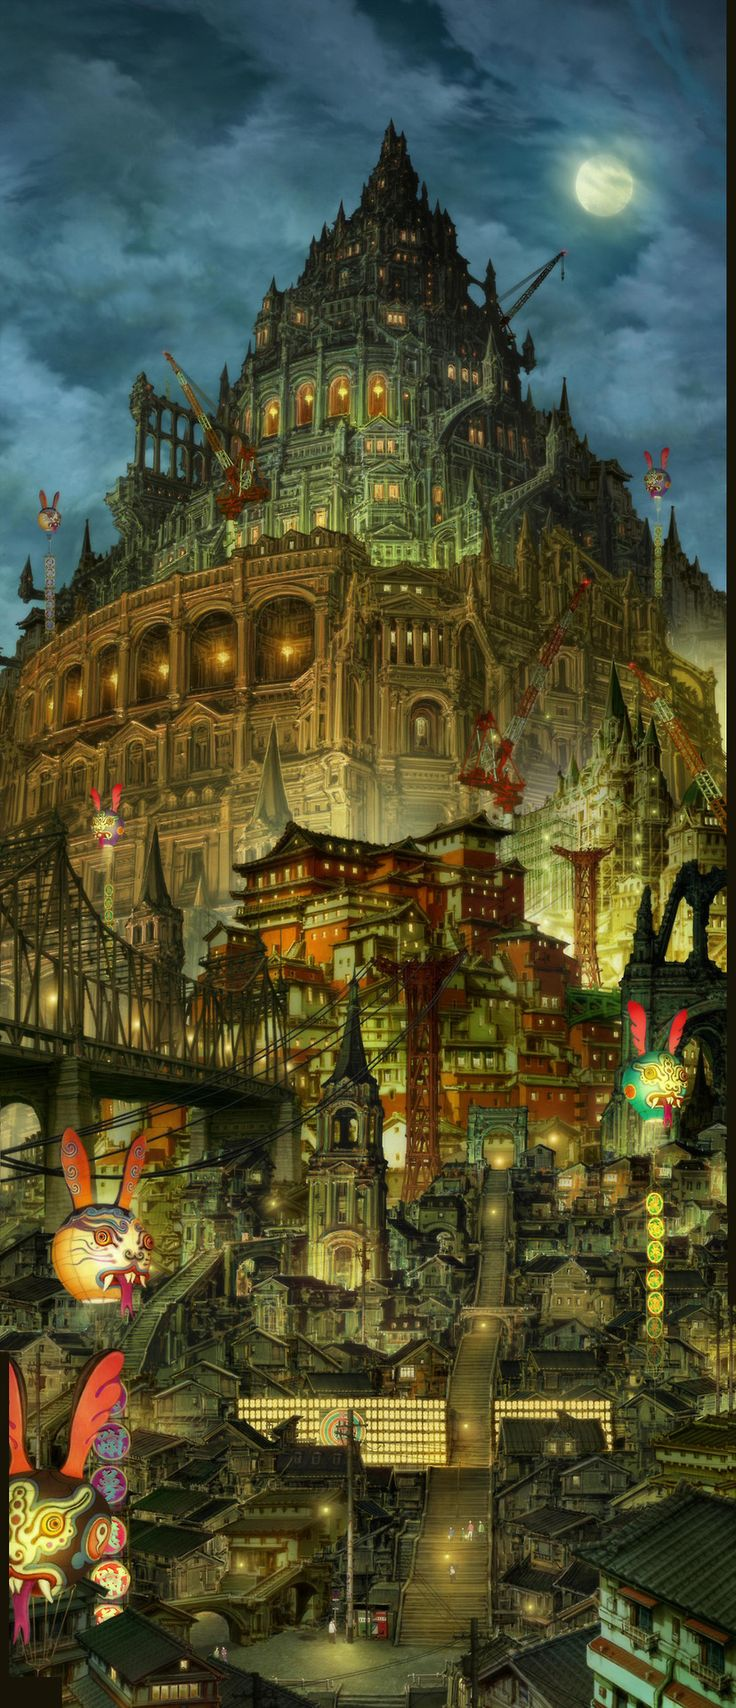 Blue exorcist rich movie scenery reminded me of Ghibli, everything was so lively :)